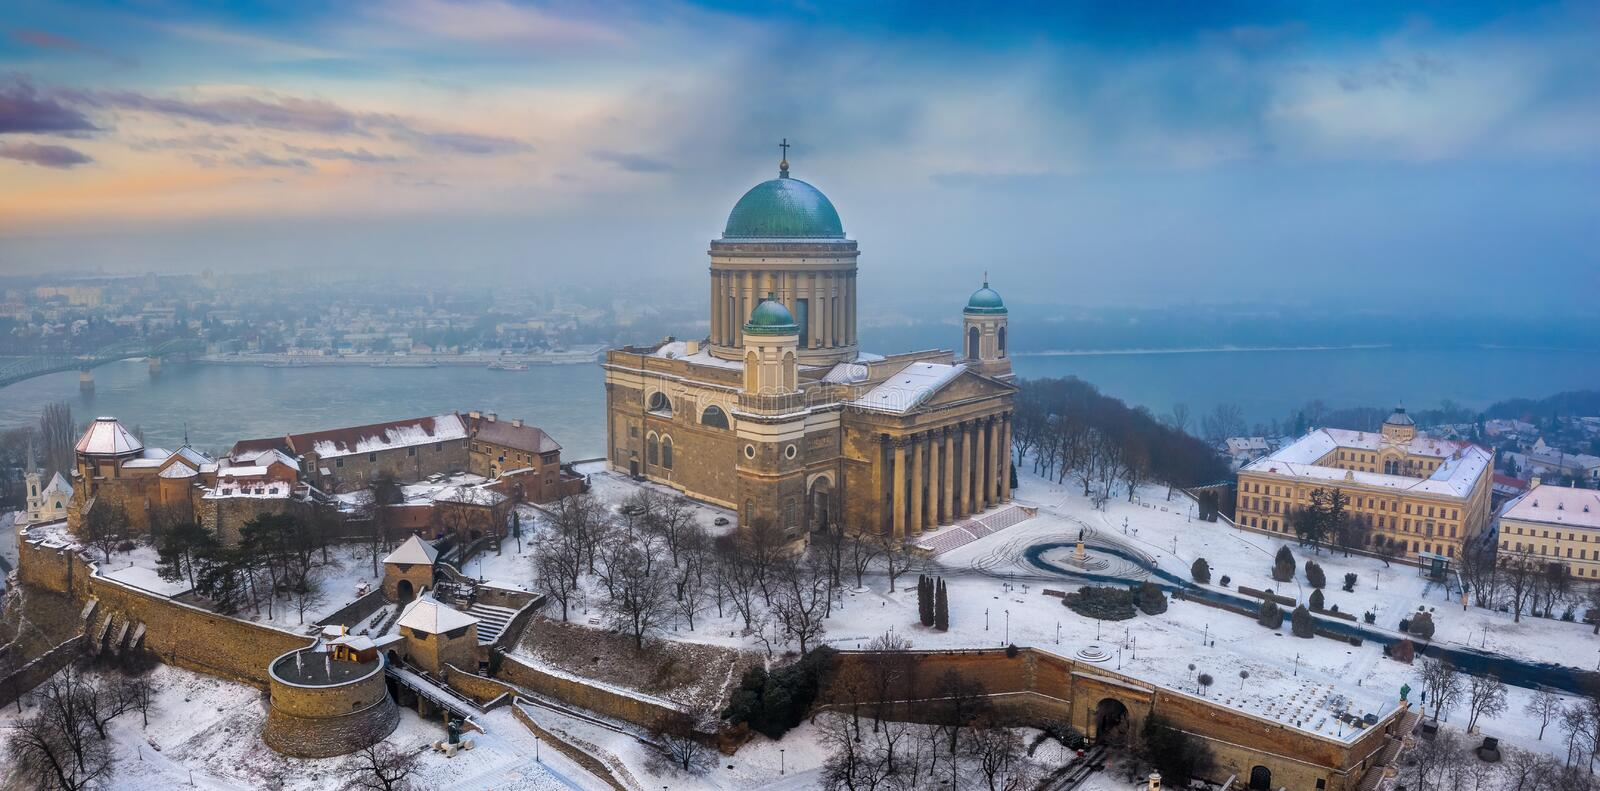 Esztergom, Hungary - Aerial panoramic view of the beautiful snowy Basilica of Esztergom with Slovakia at the background. On a foggy winter morning royalty free stock photography